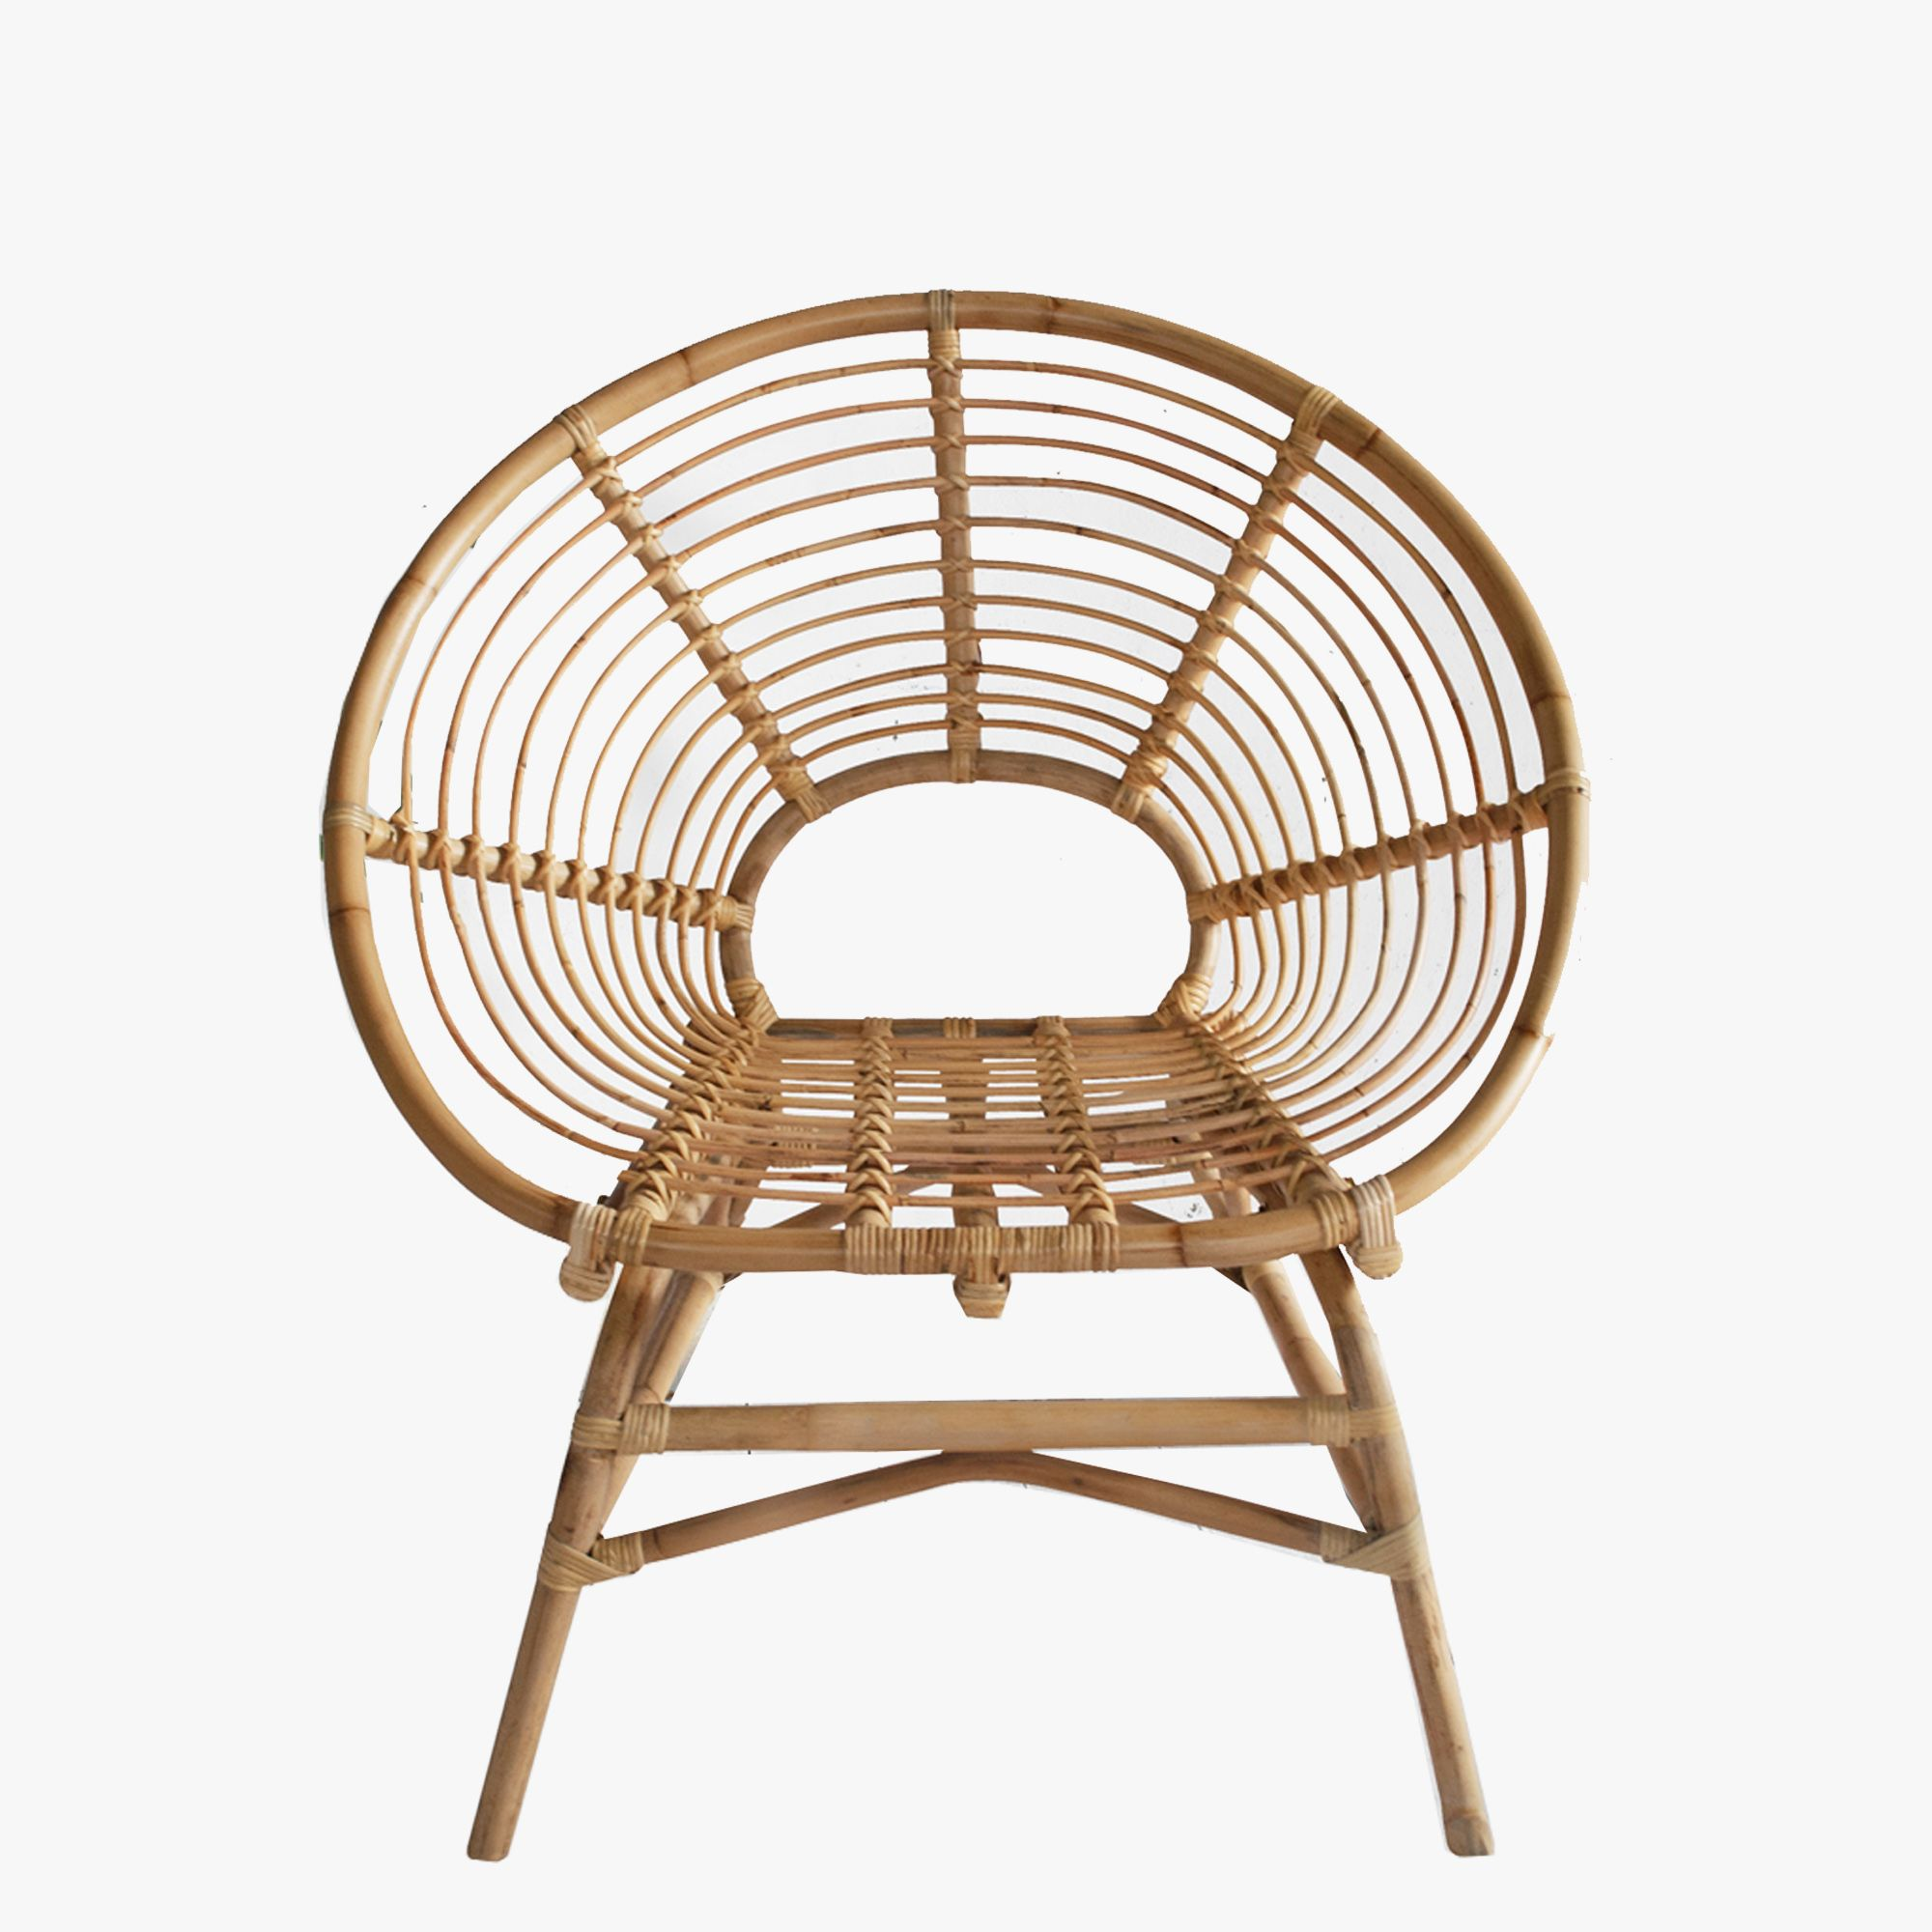 The Wend Studio Ring Rattan Chair with its open weave design and